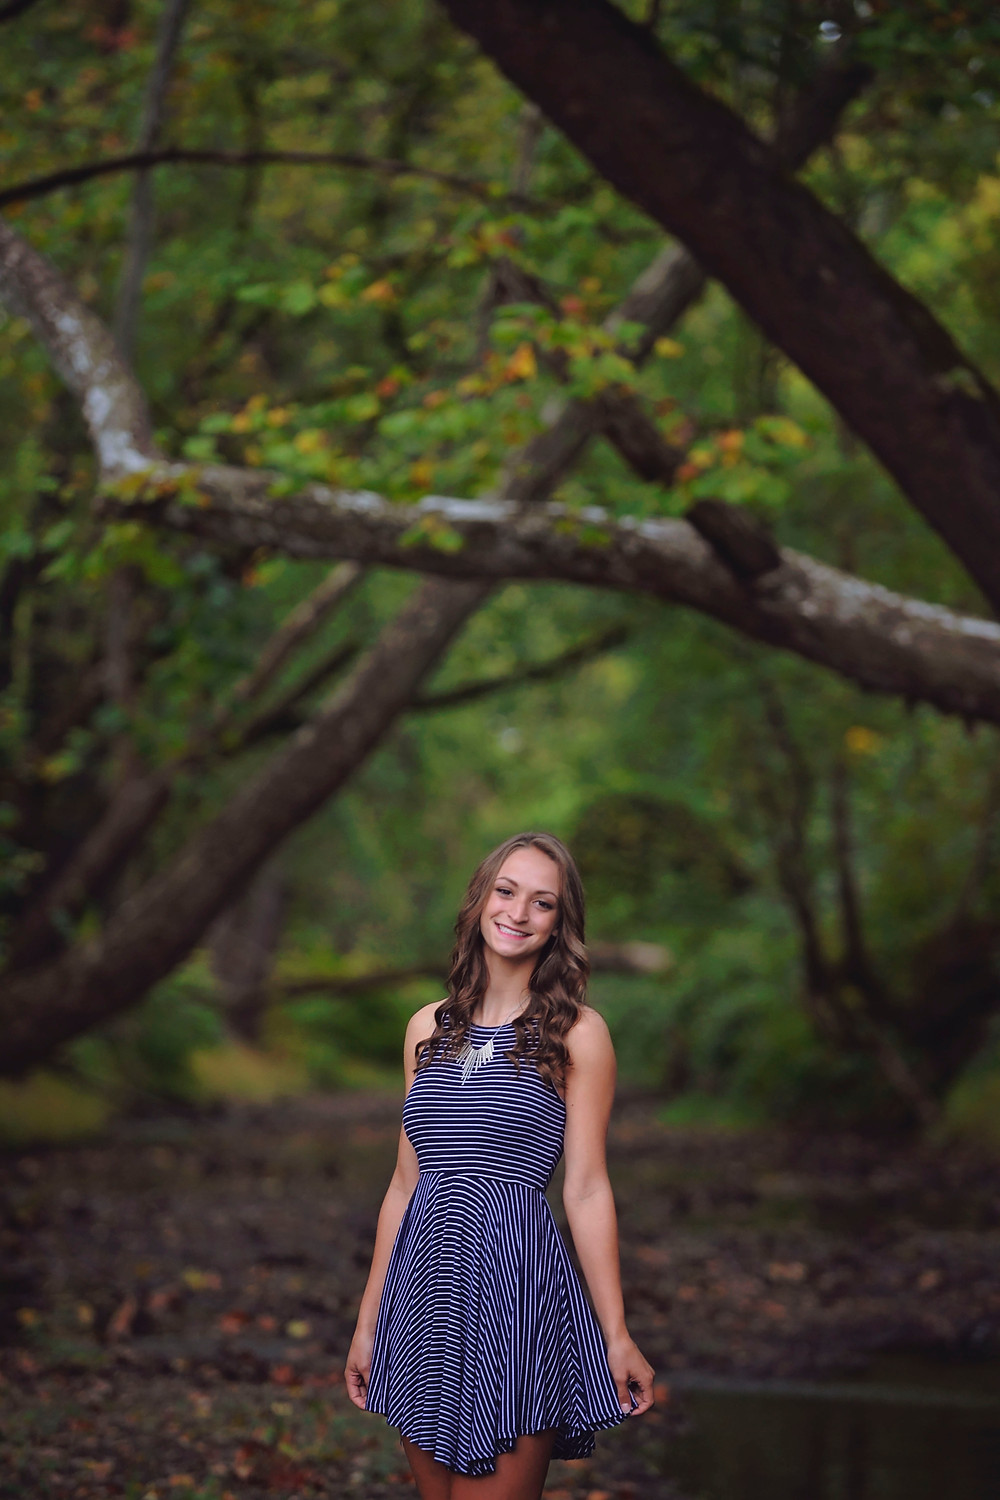 pittsburgh senior portraits, pittsburgh senior pictures, ambridge highschool